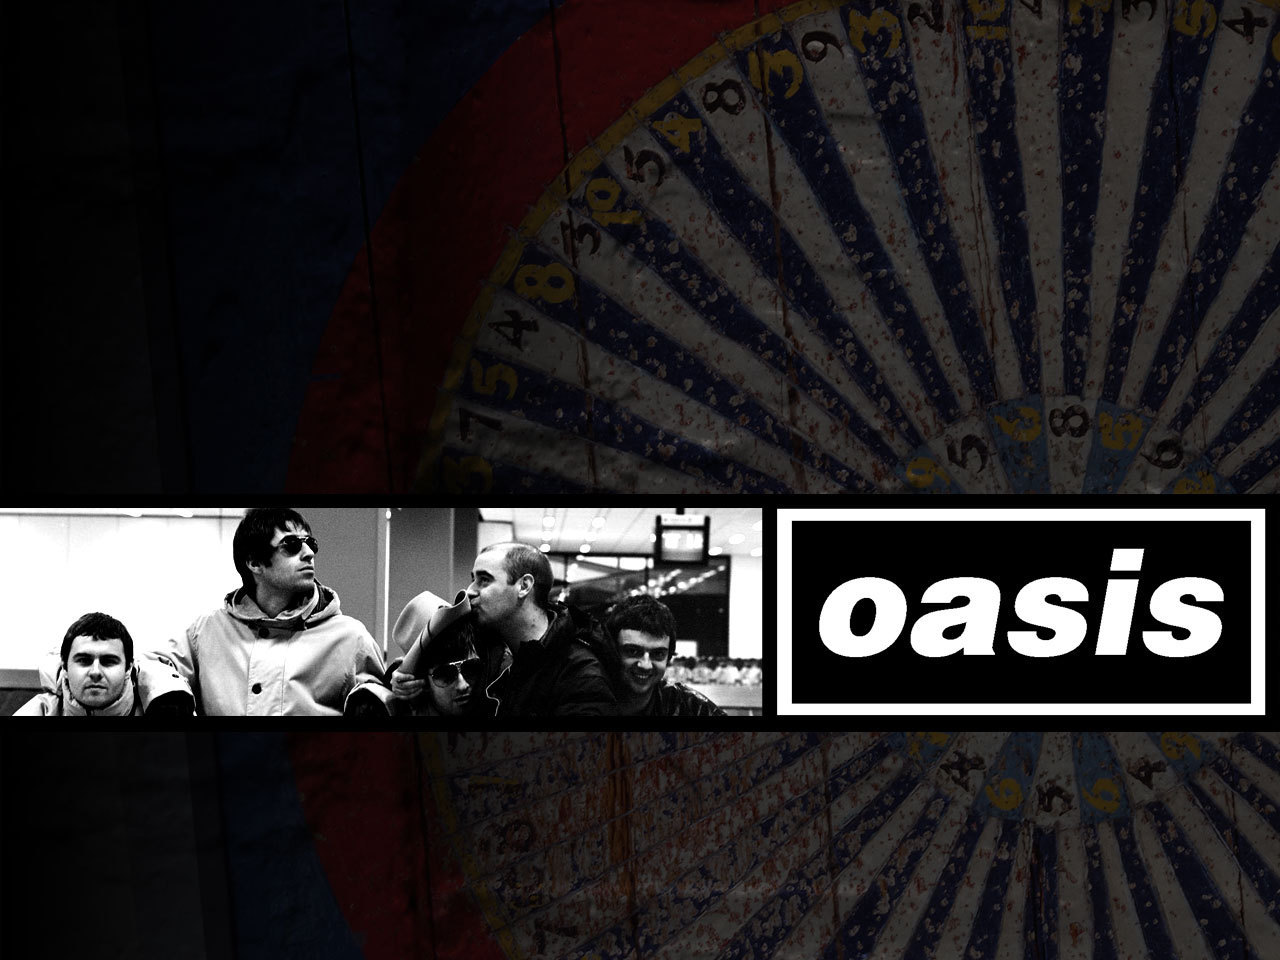 Oasis images Oasis Wallpaper HD wallpaper and background 1280x960